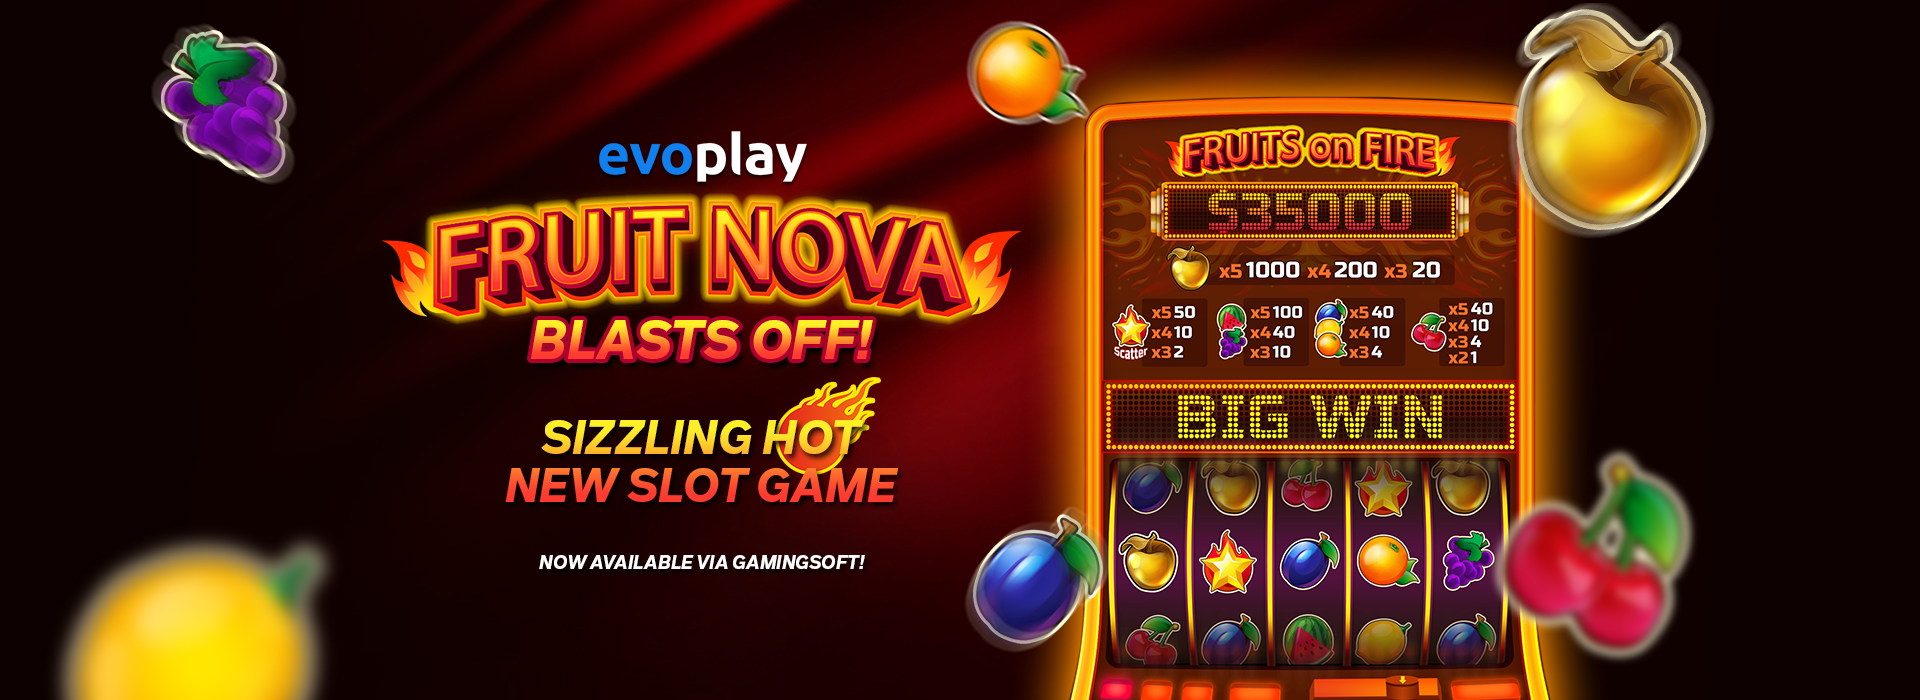 The Fruit Nova Slot Game Provided by Evoplay - GamingSoft